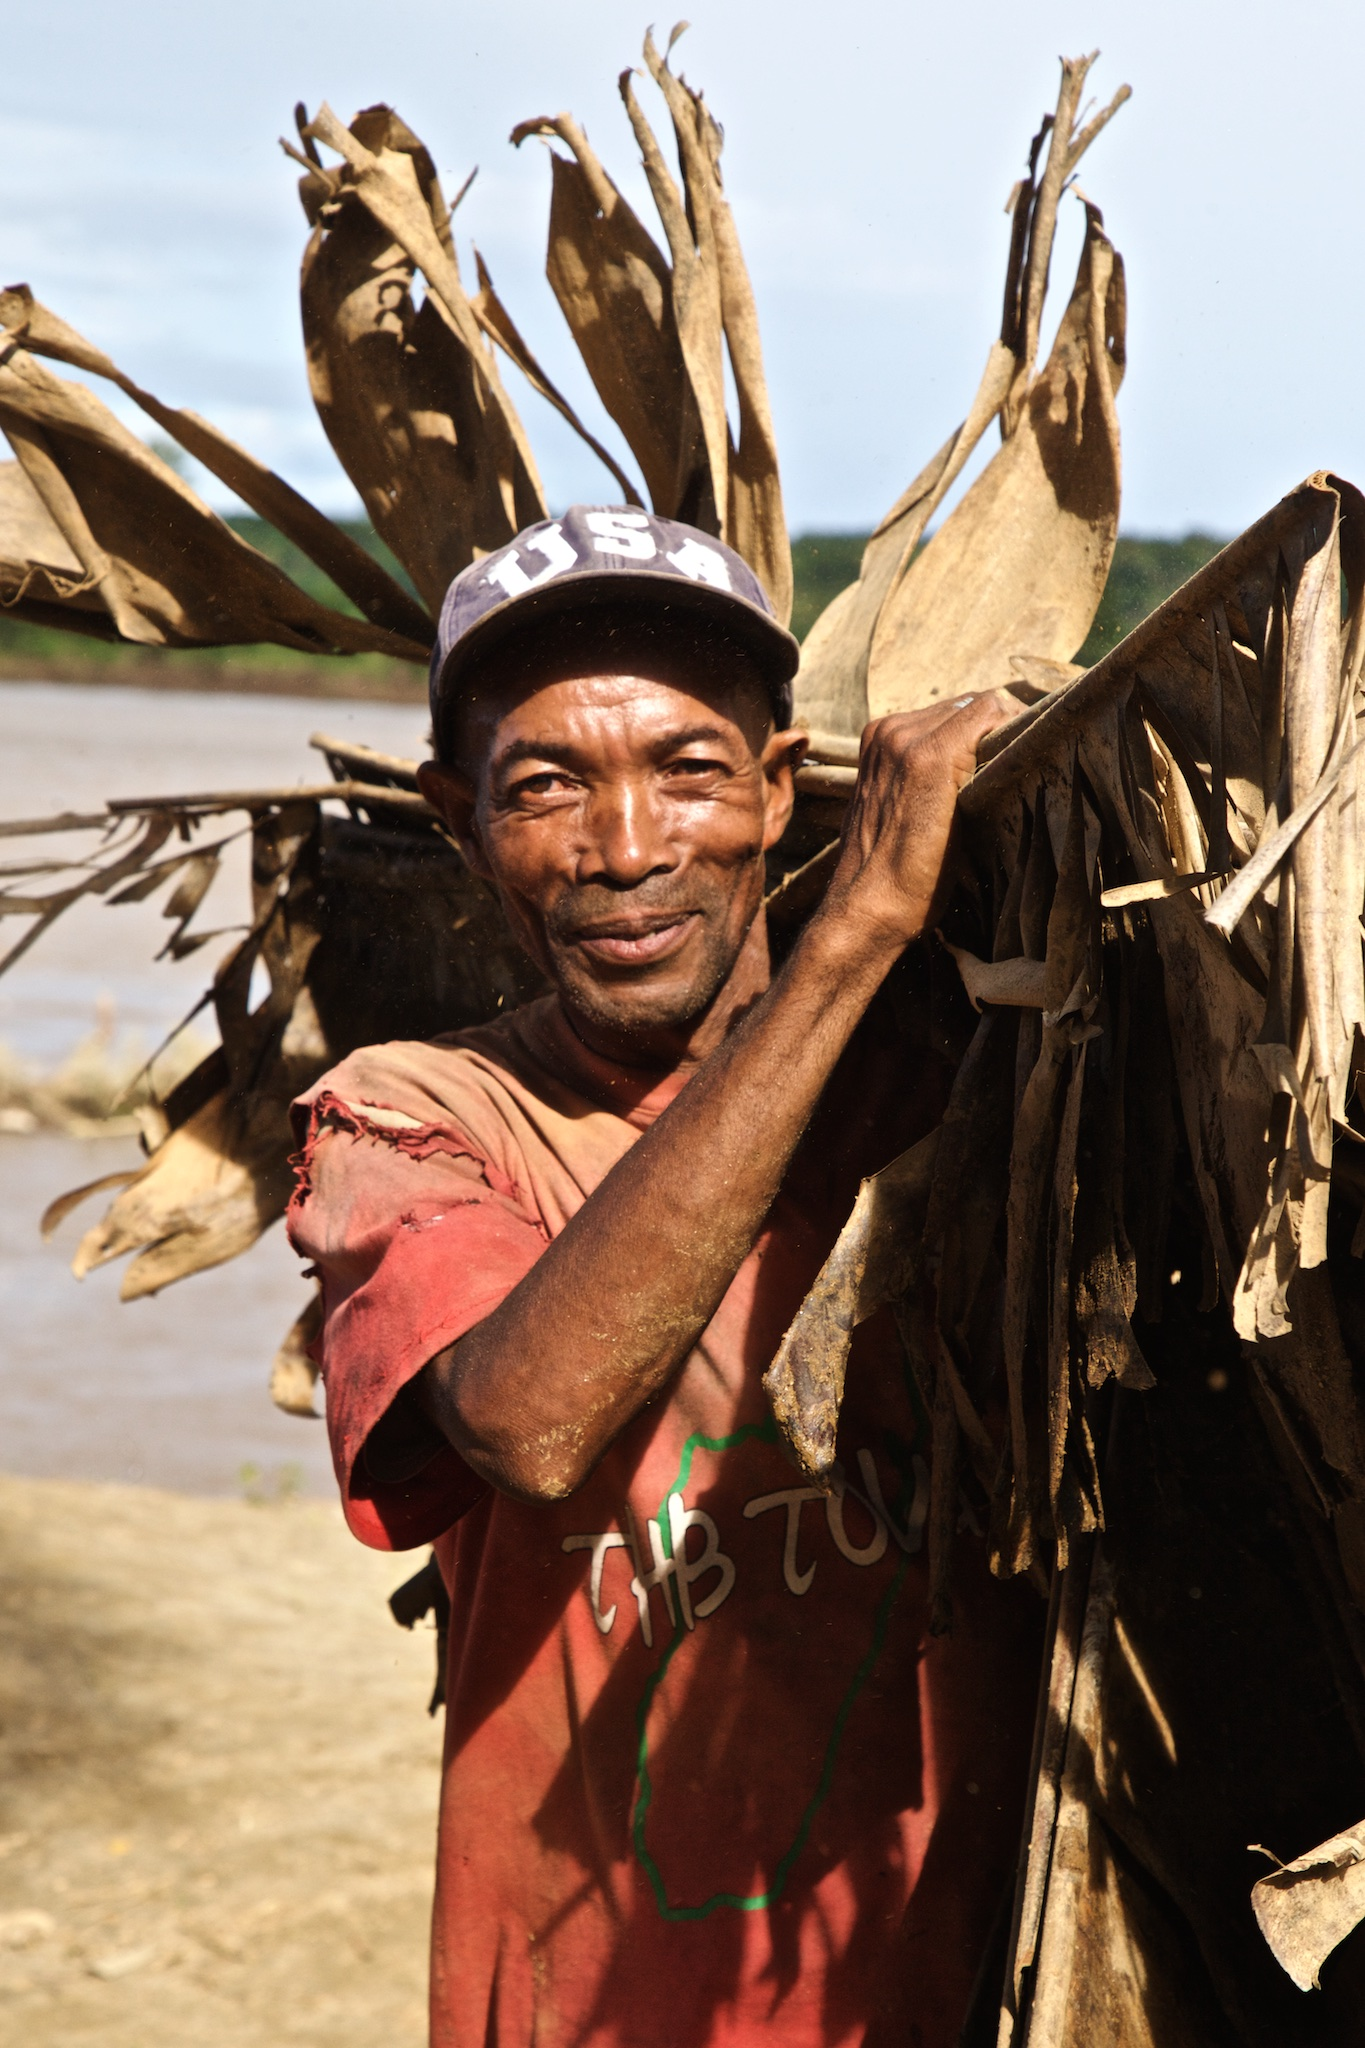 Liman Gathers Palm Fronds from the Riverbank. They Will Be Washed and Stacked to Thatch the New Homes